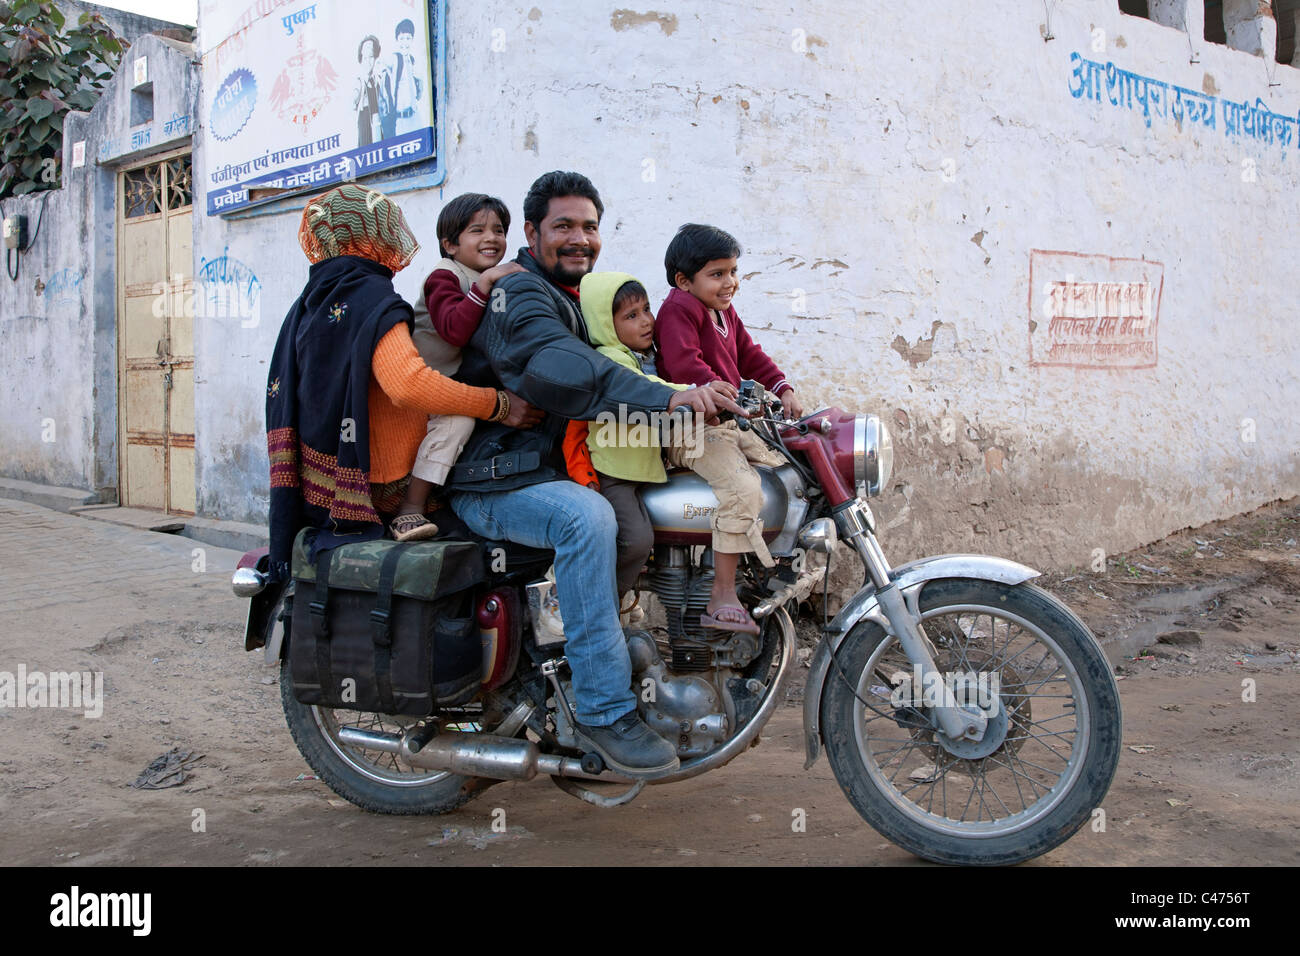 [Imagem: indian-family-on-an-enfield-motorcycle-p...c4756t.jpg]